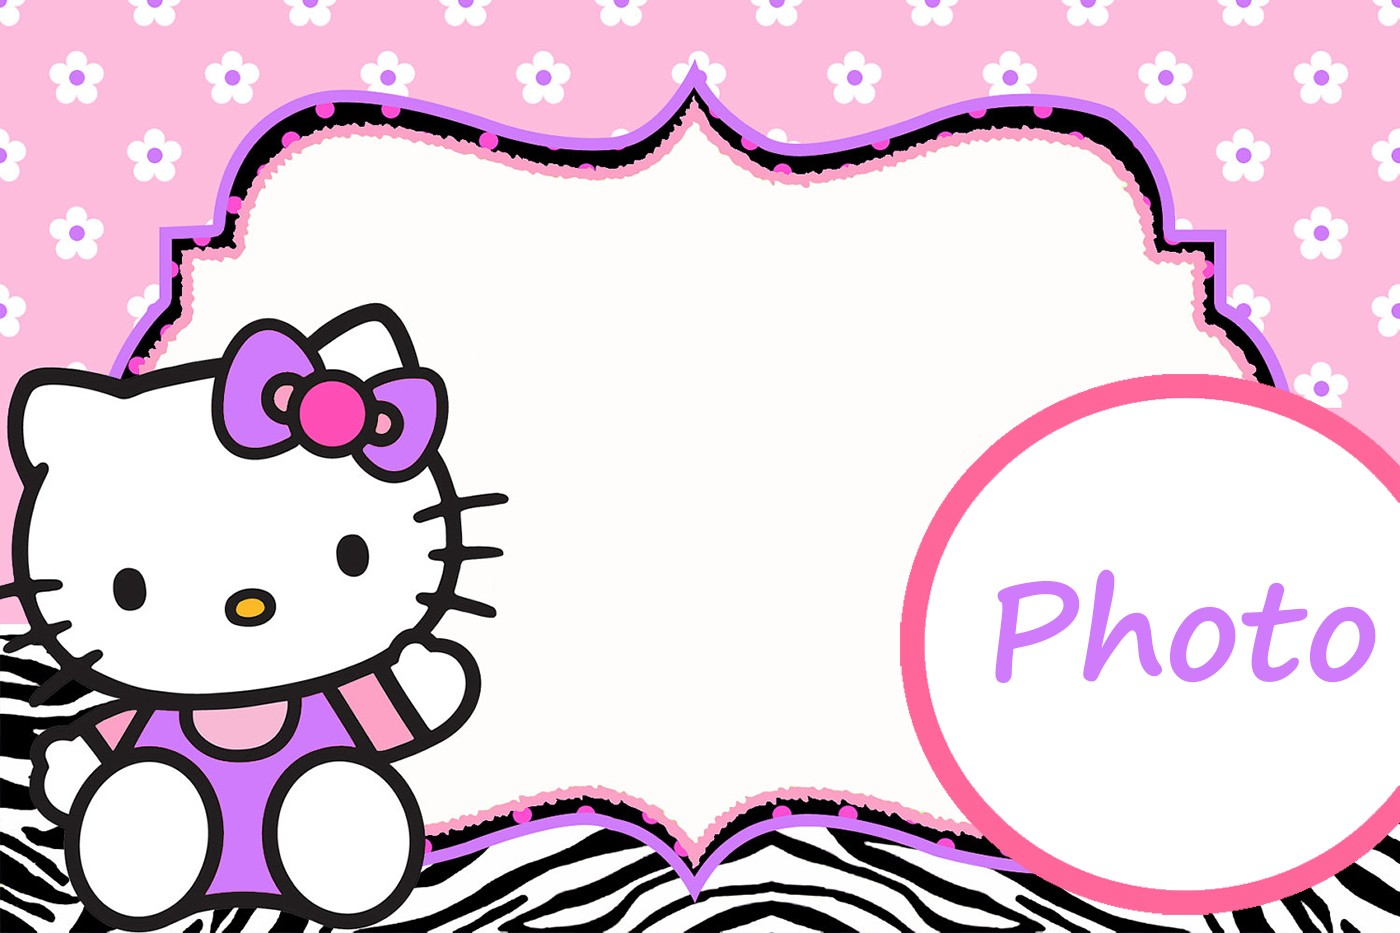 Personalized Hello Kitty Invitation Template | Invitations ...